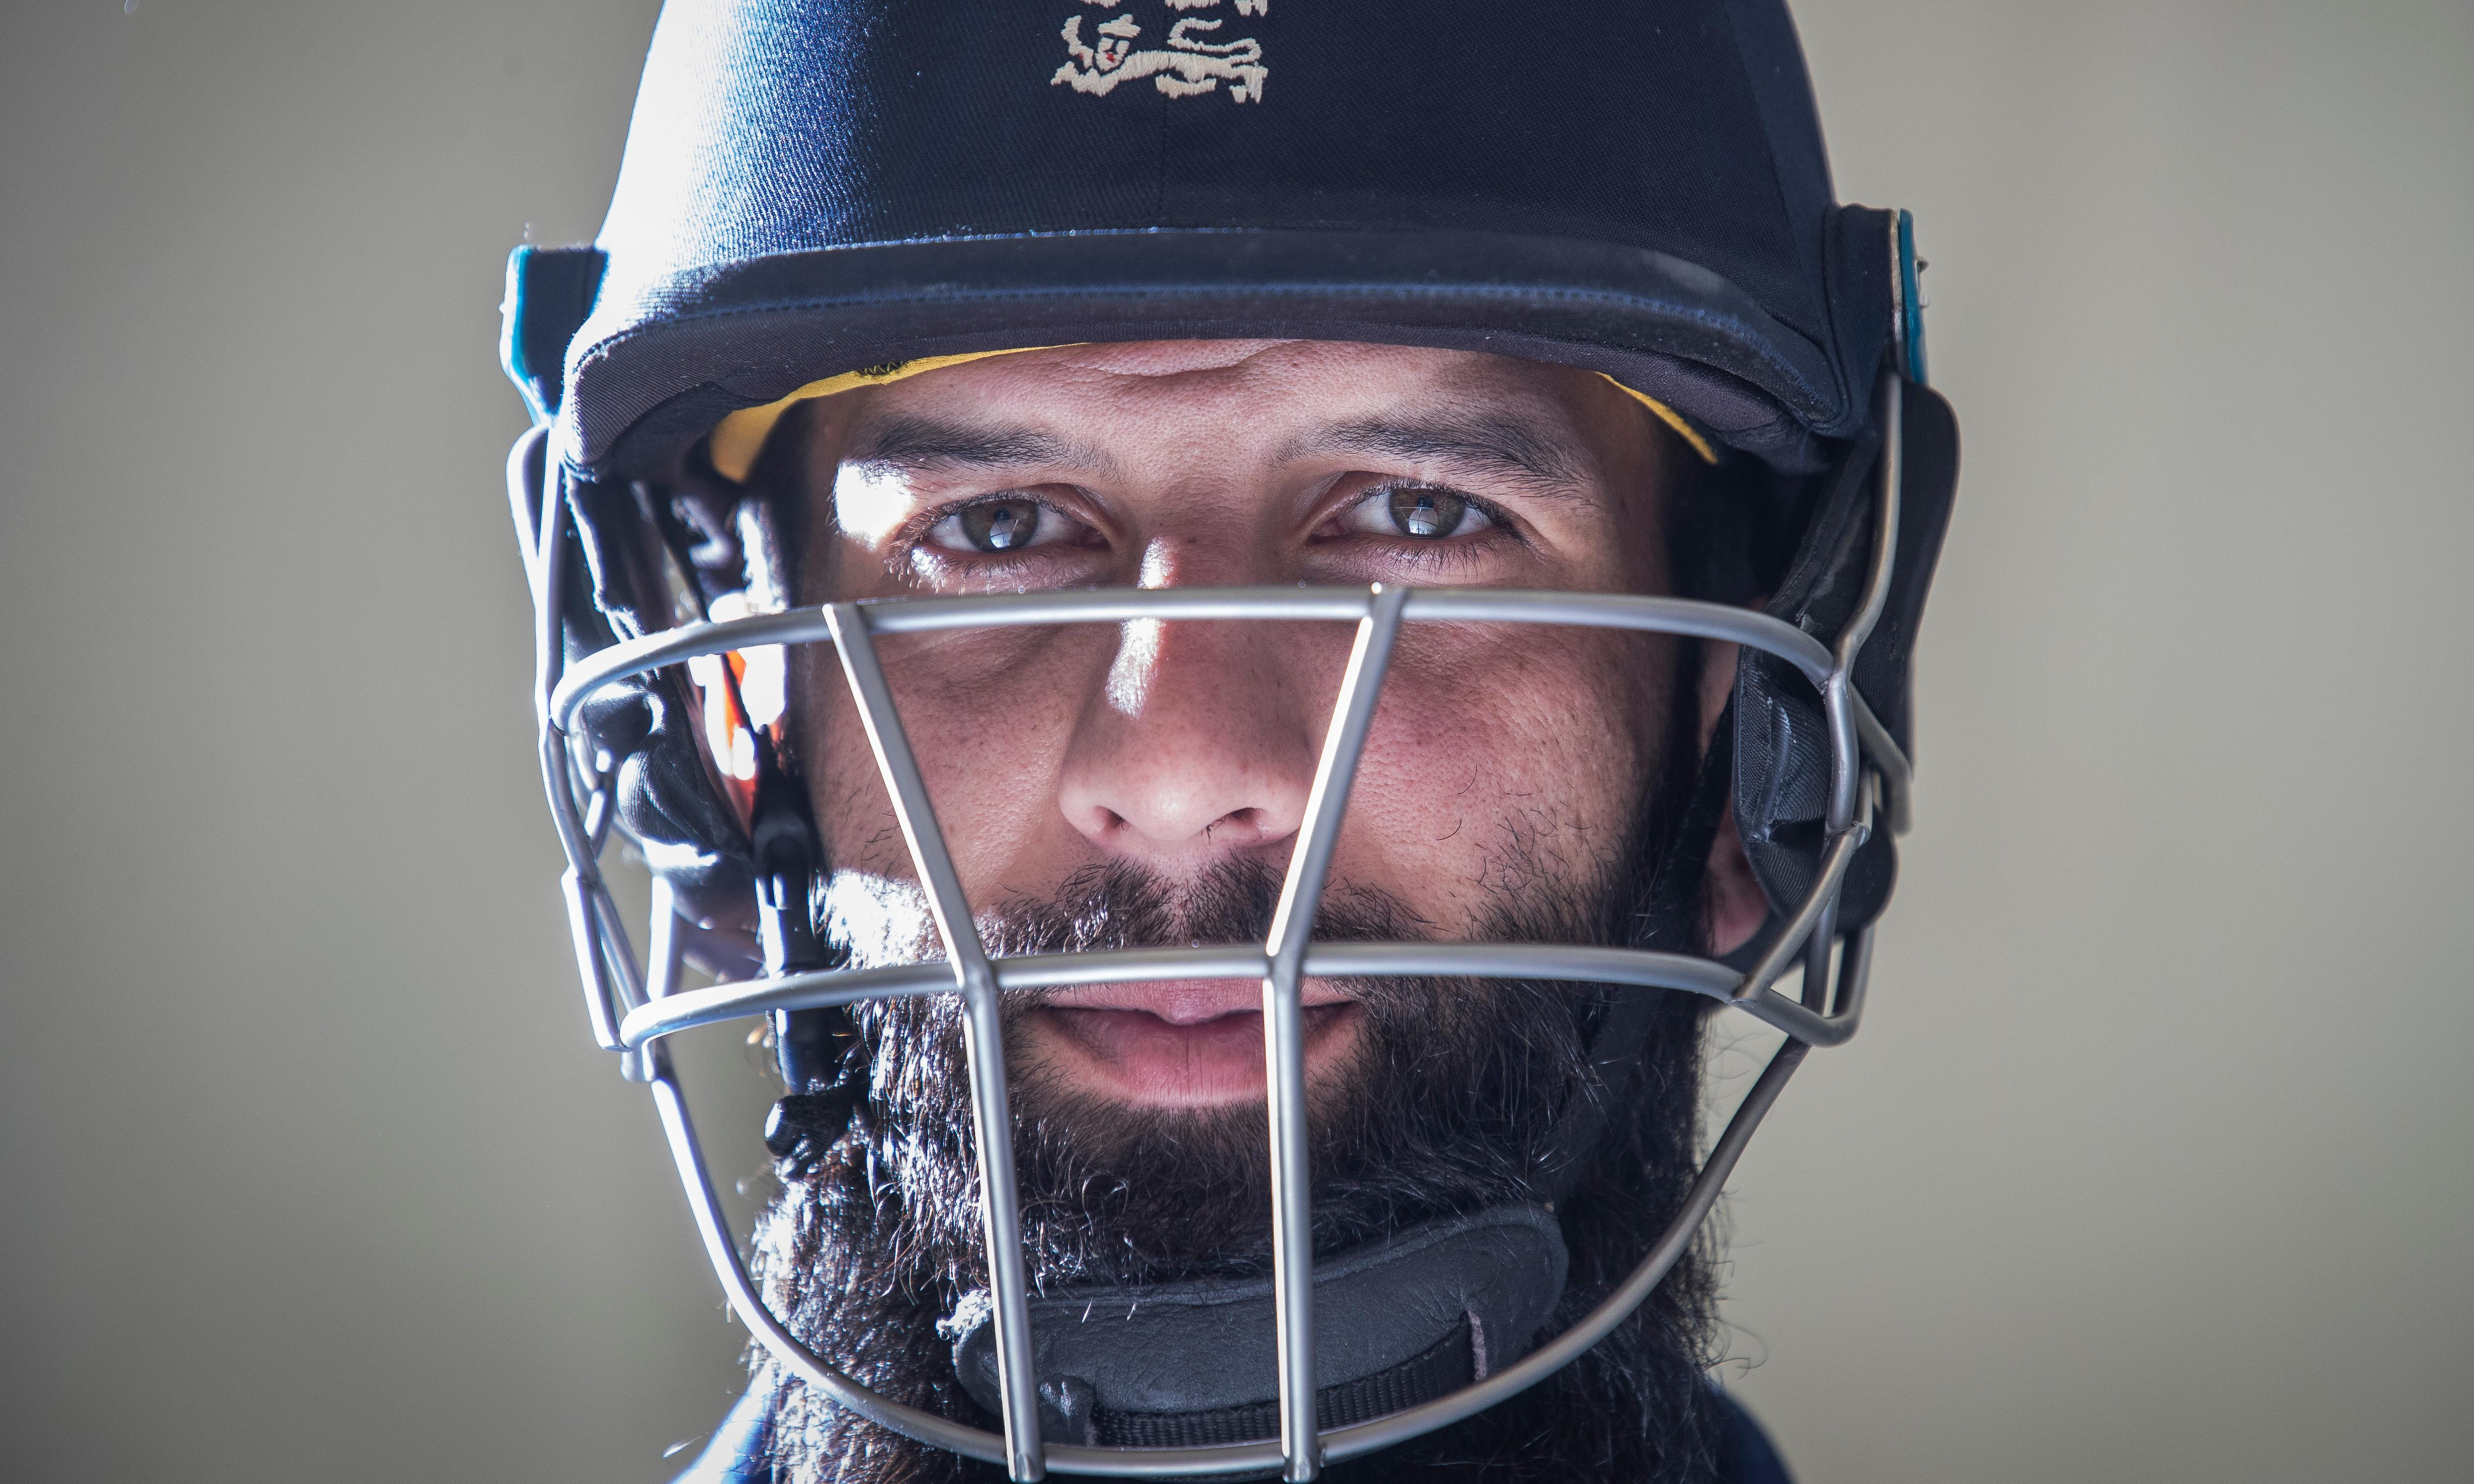 Moeen Ali: 'What has happened to us? There's so much hate in the world'